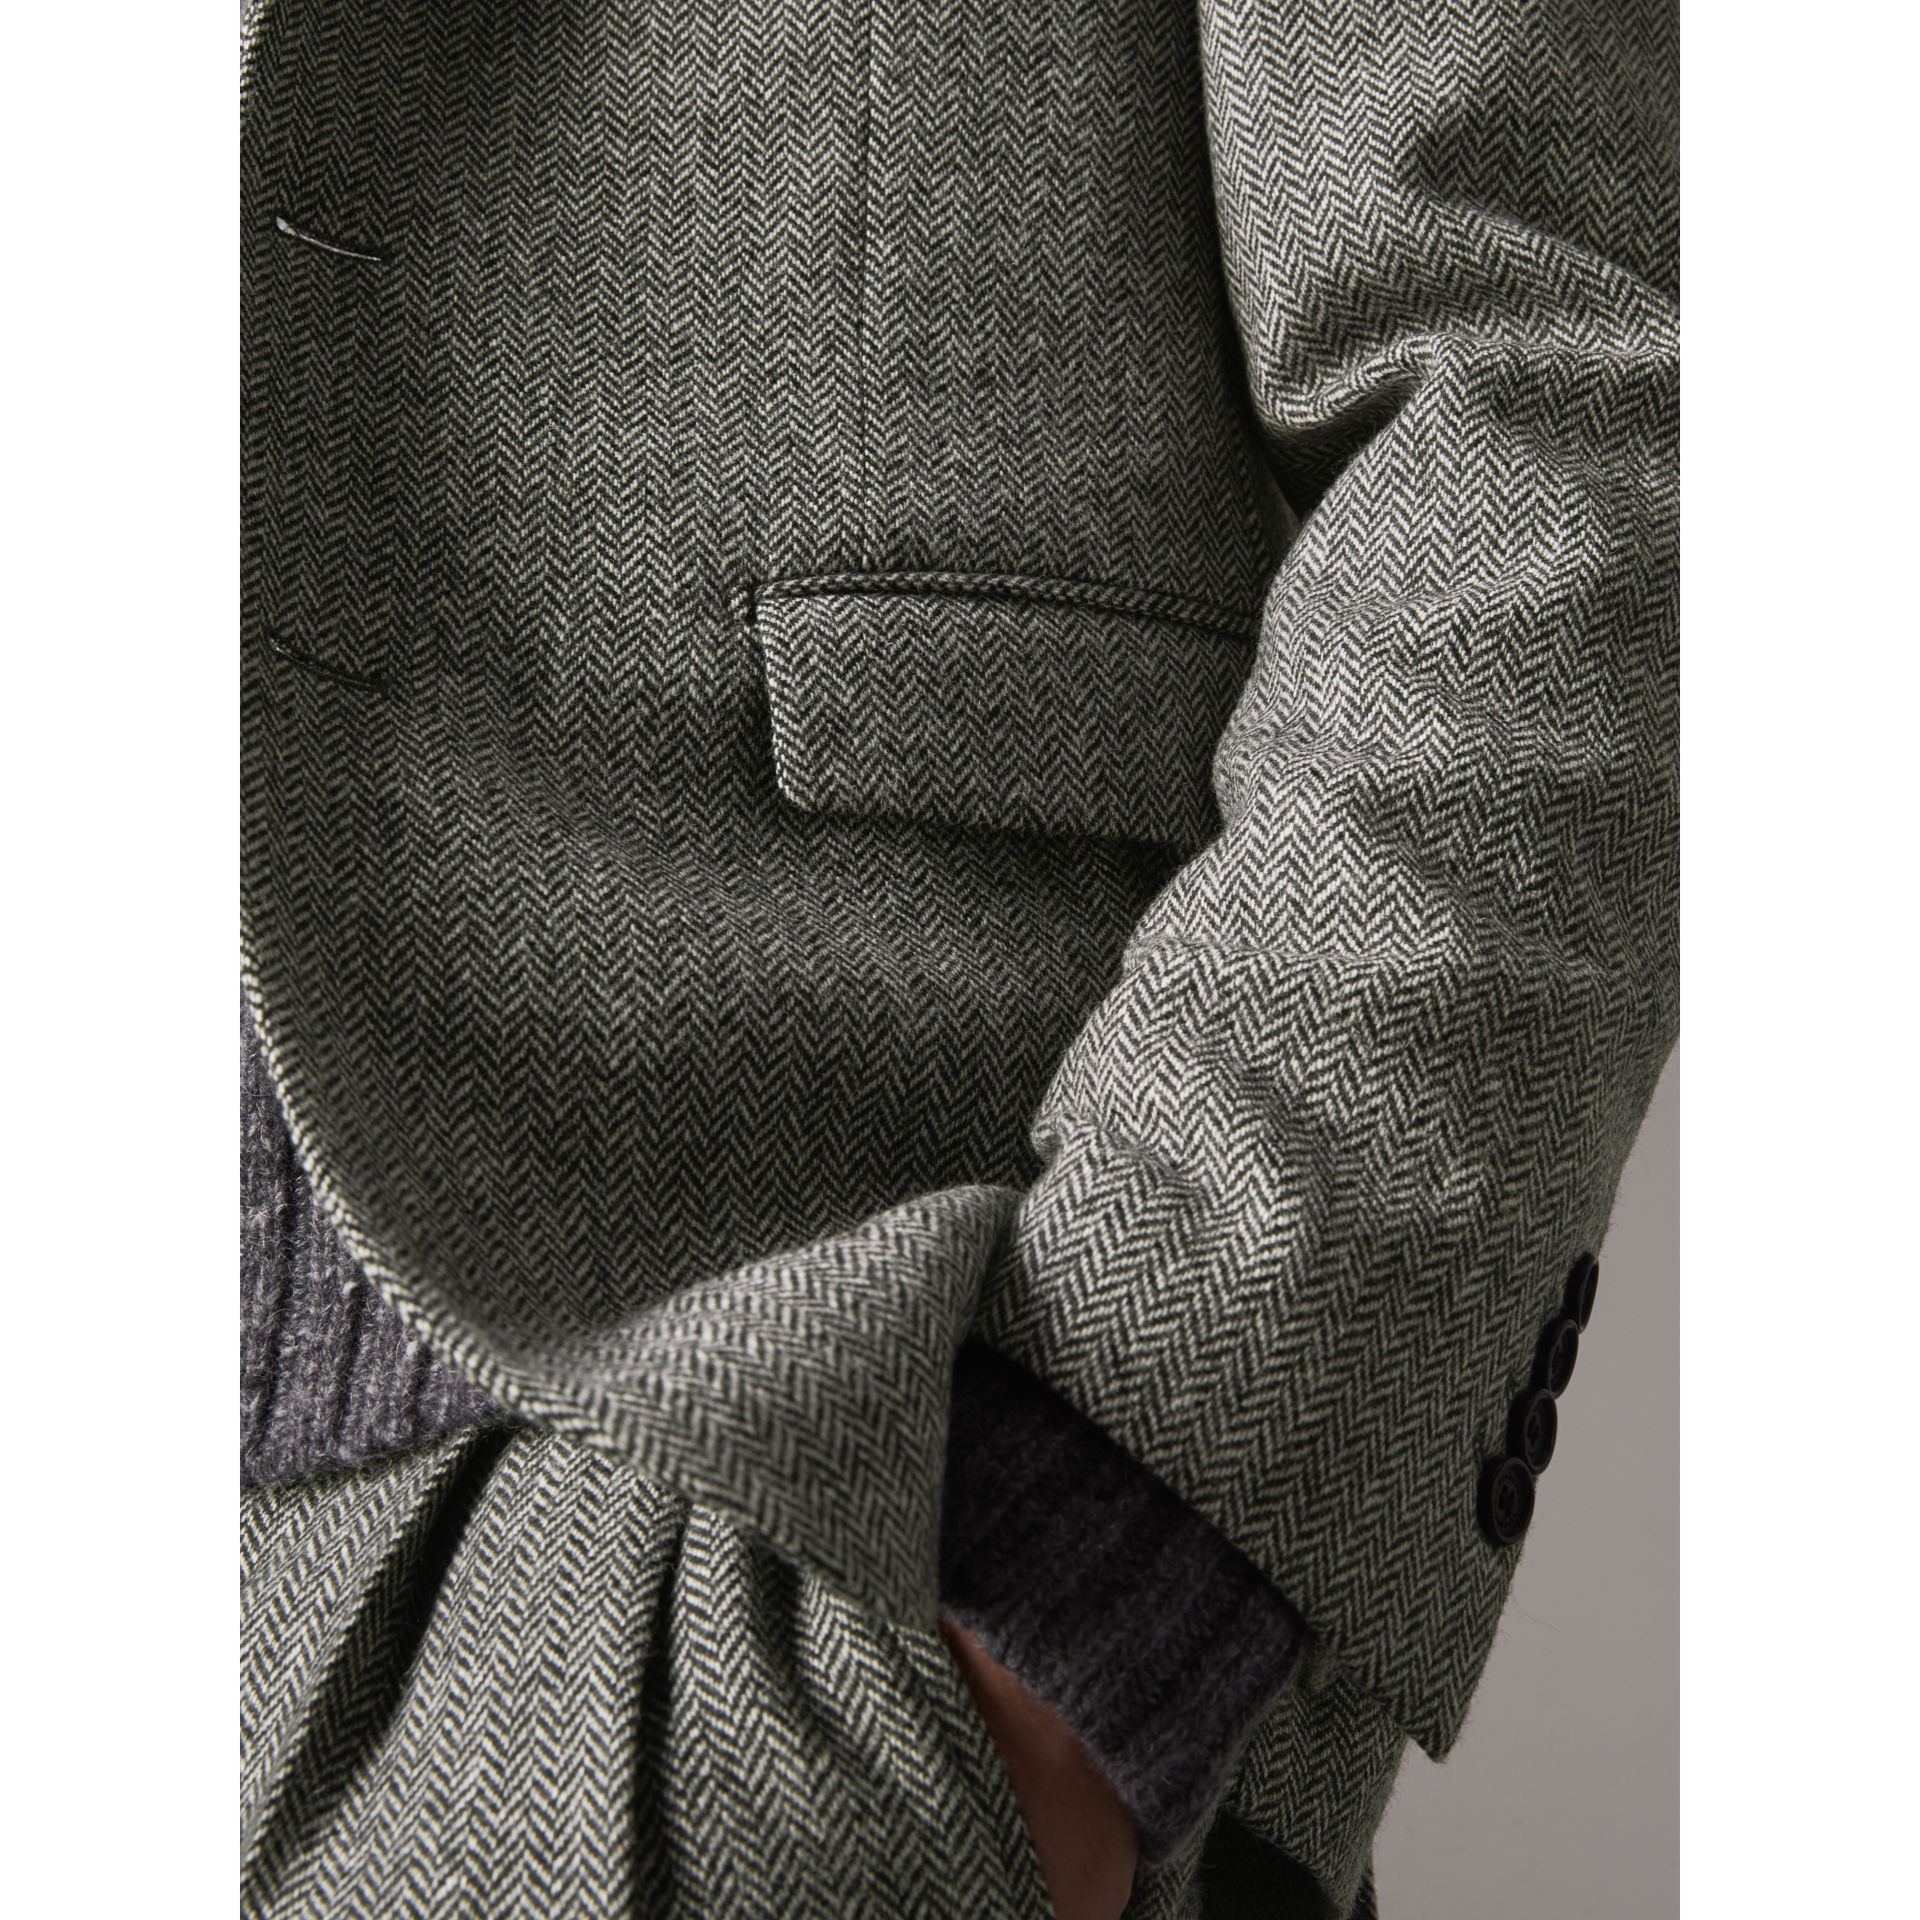 Soho Fit Herringbone Wool Tailored Jacket in Black / White - Men | Burberry Singapore - gallery image 5